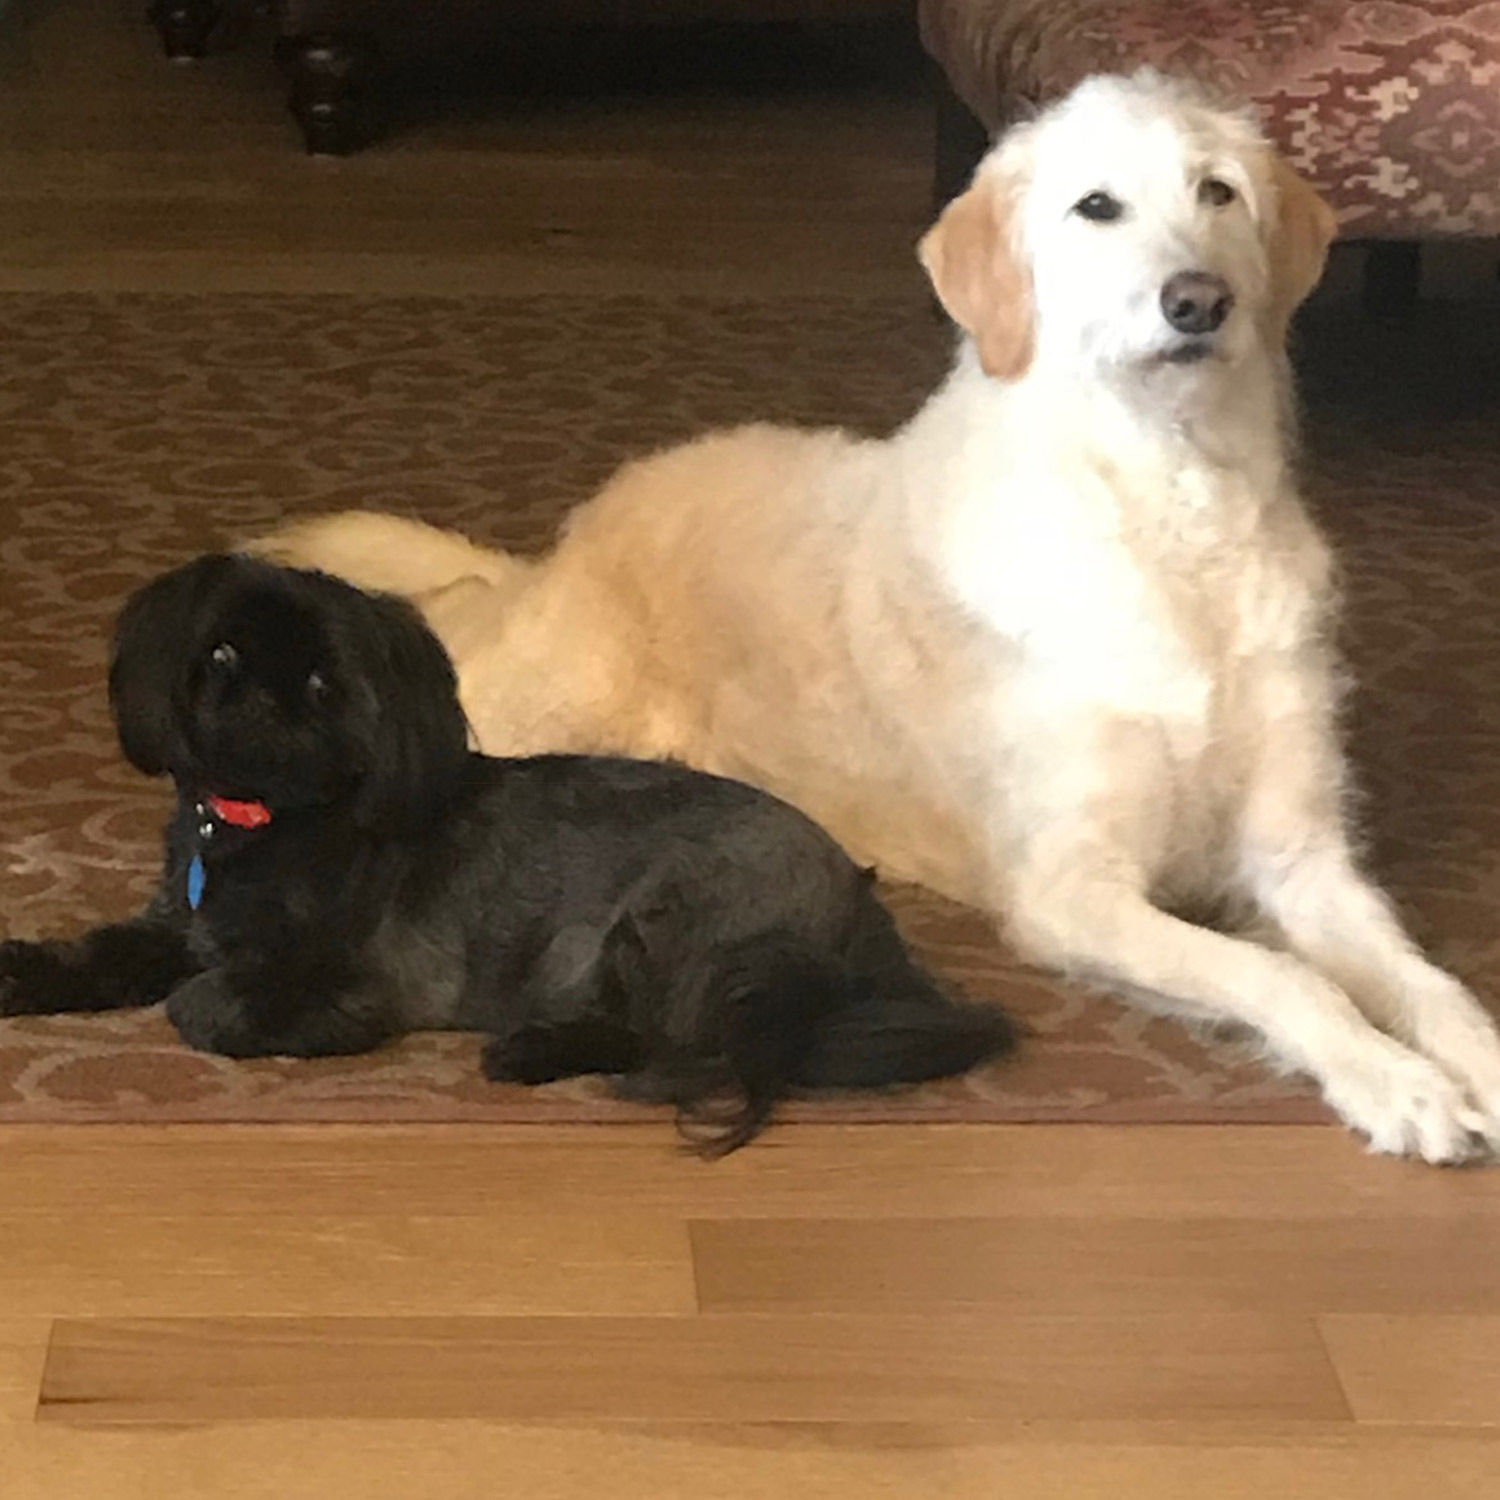 Patricia H. sent two pictures of her Charlie, a Shih Tzu, and Scout, a wire-haired Labradoodle, who sheds like crazy! They remind us of the yin and yang of a new year: Opposite but complementary, out with the old, in with the new. Big changes!